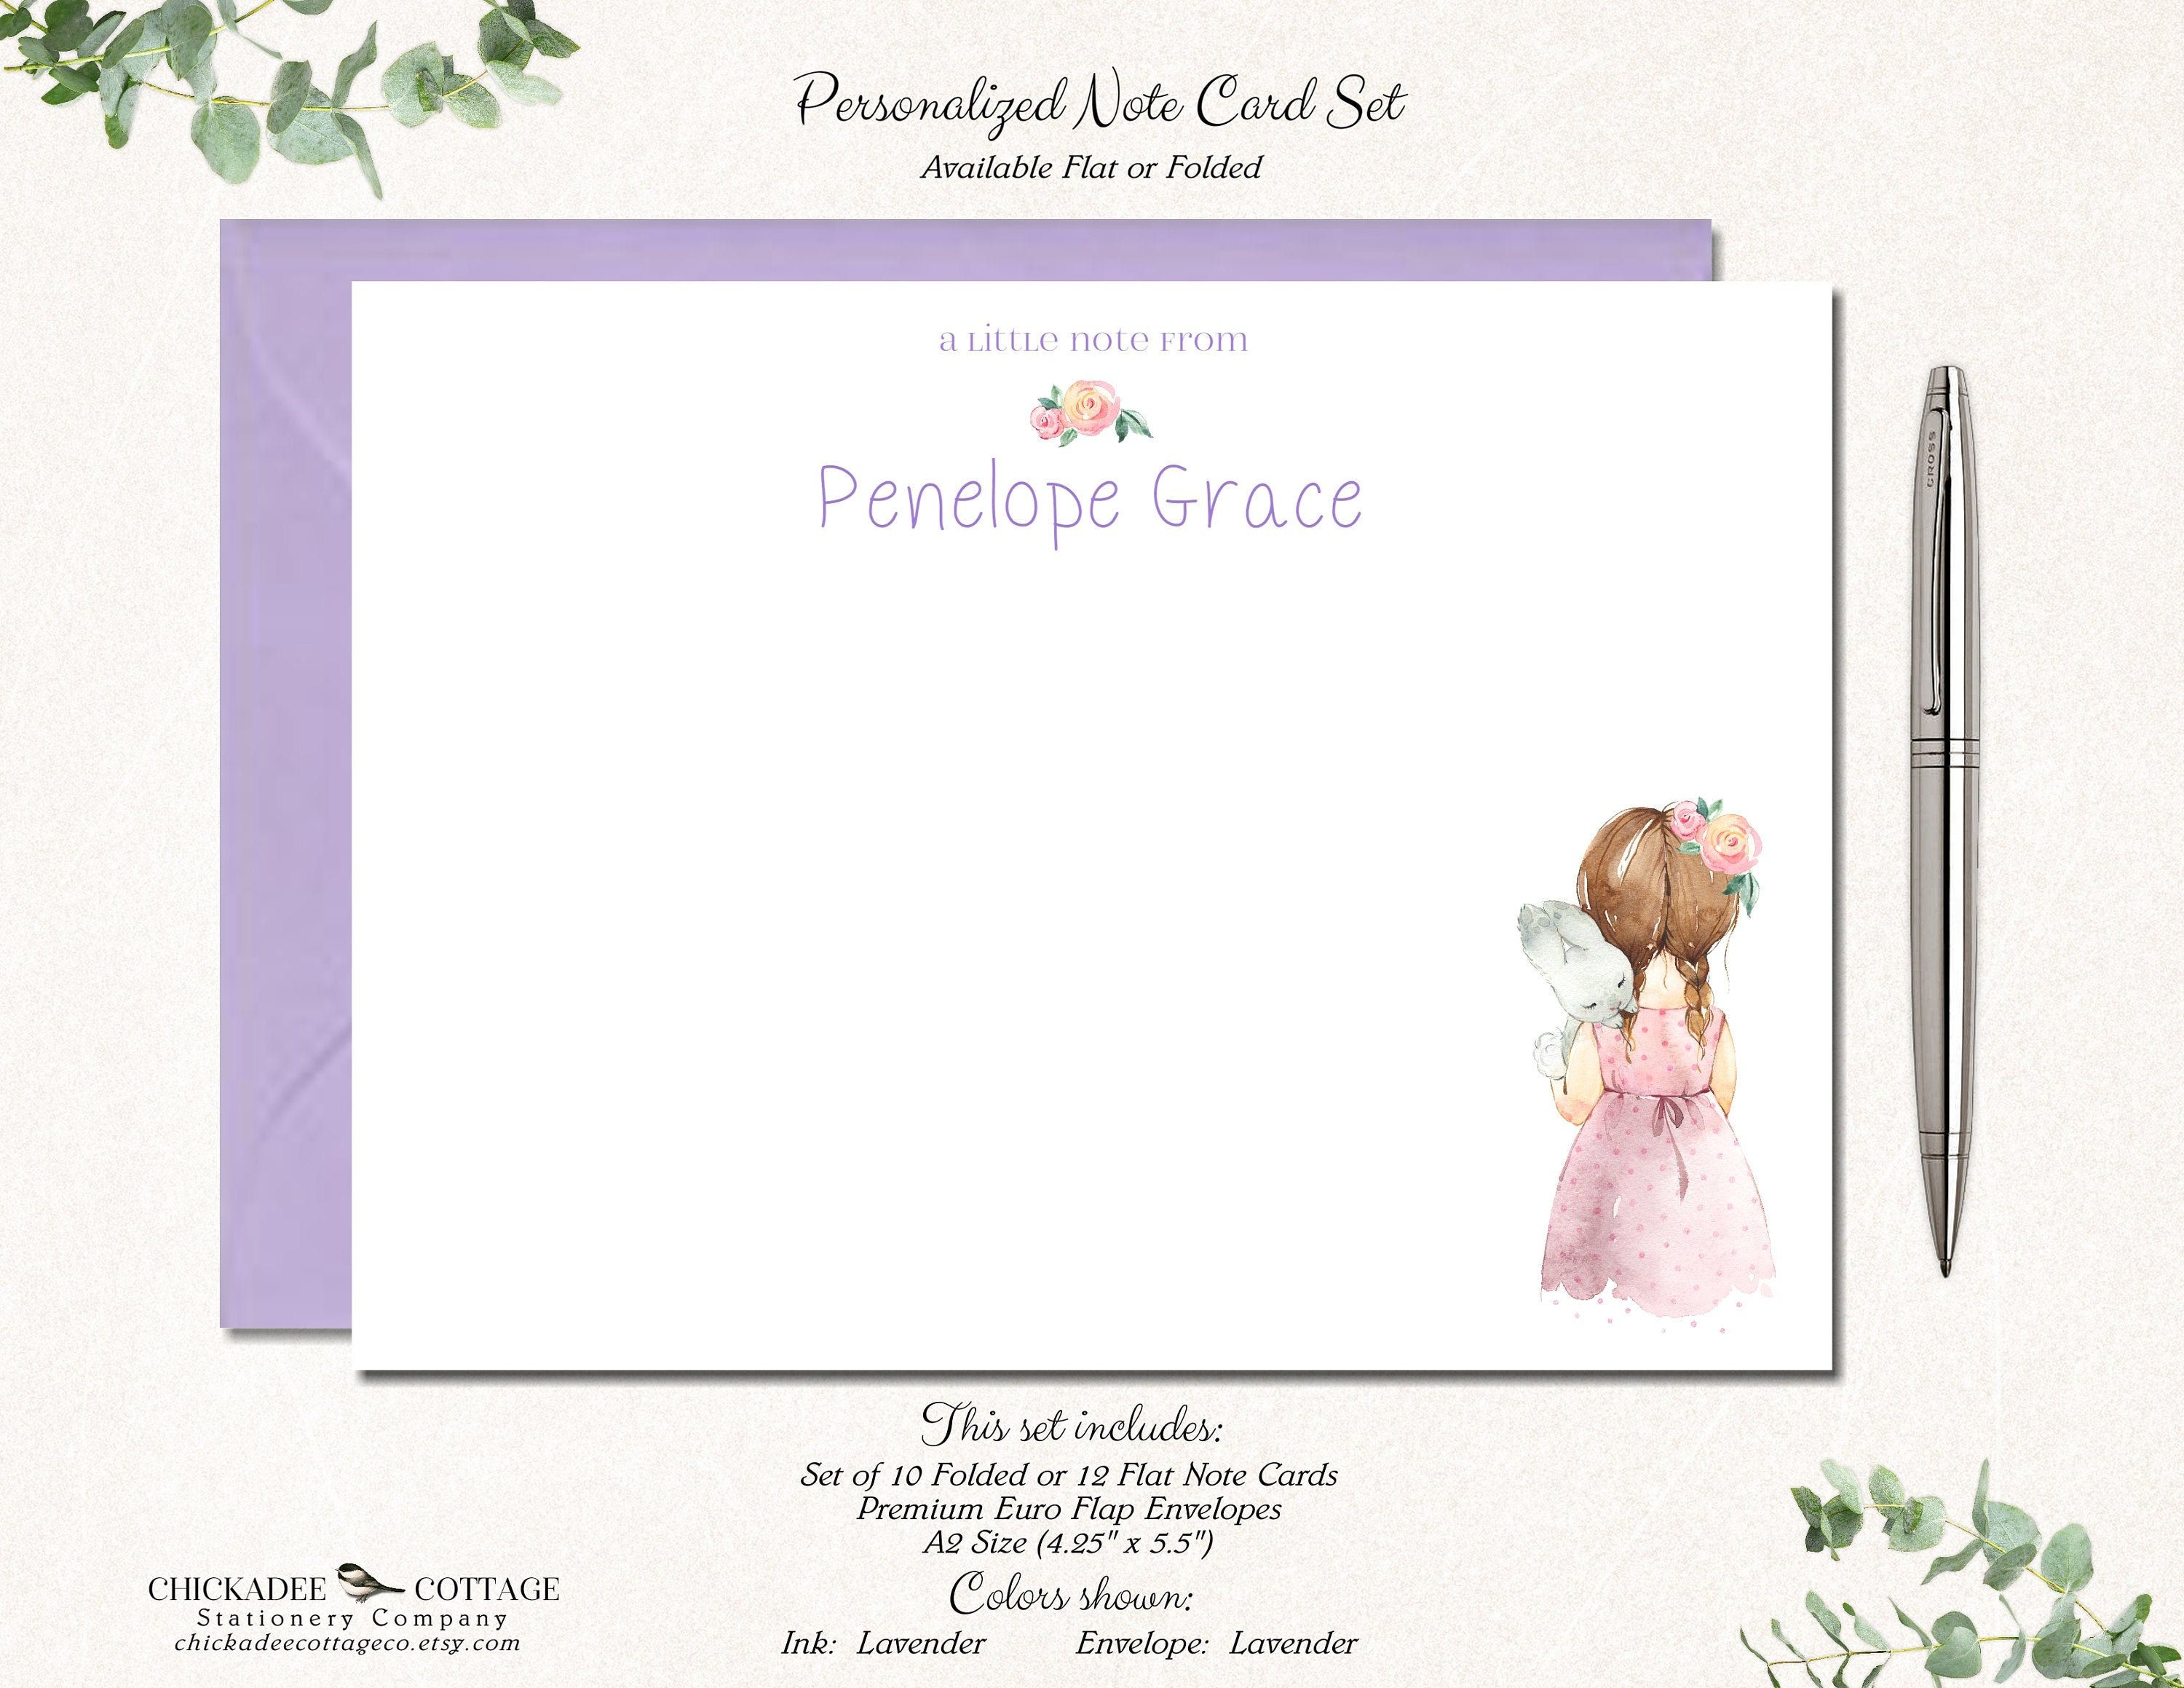 Note Card Kids Personalized Stationery Stationary. Personalized Thank You Notes for Kids Personalized Stationery Kids Thank You Card